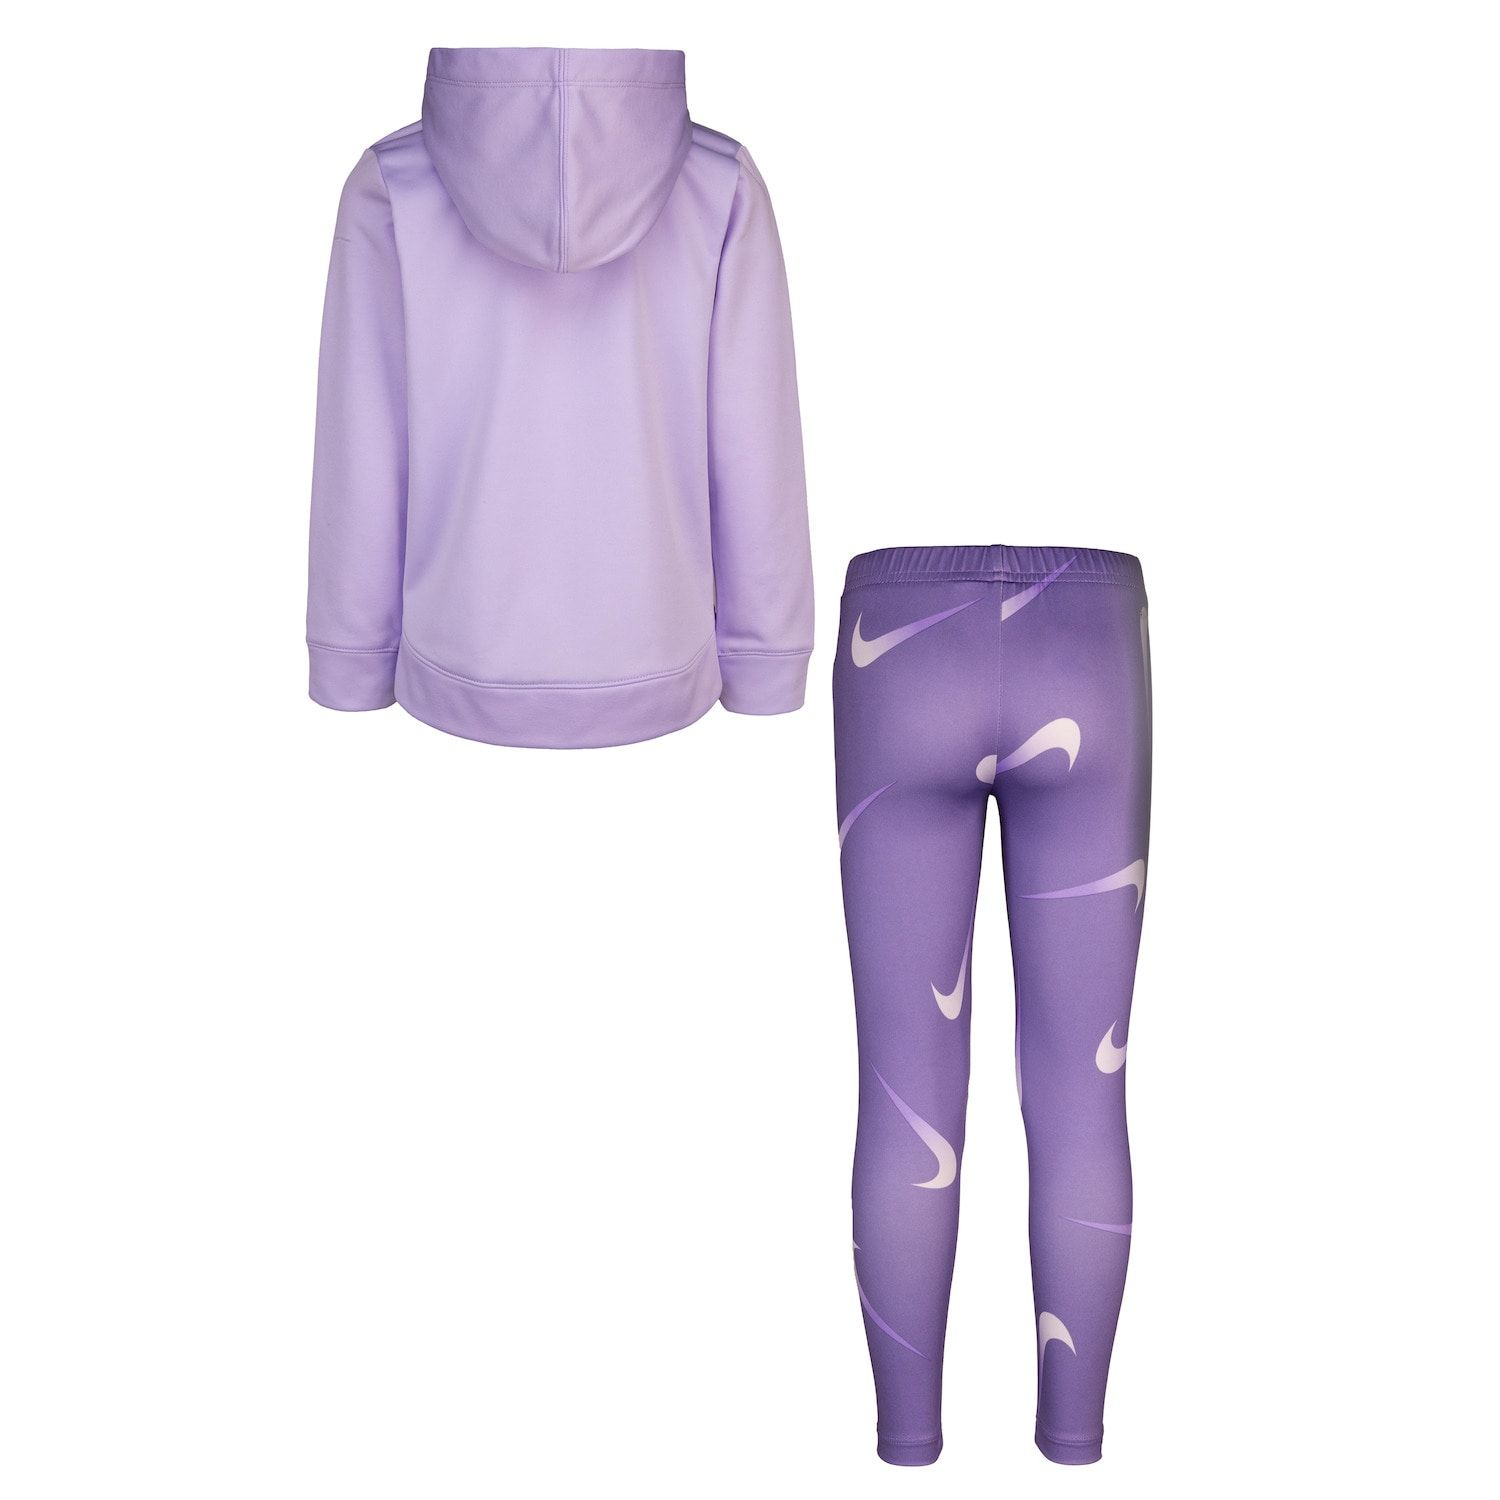 Full zip; Therma-Fit; Pink//Purple - Size 4 6X Girls Nike Hoodie Jacket New